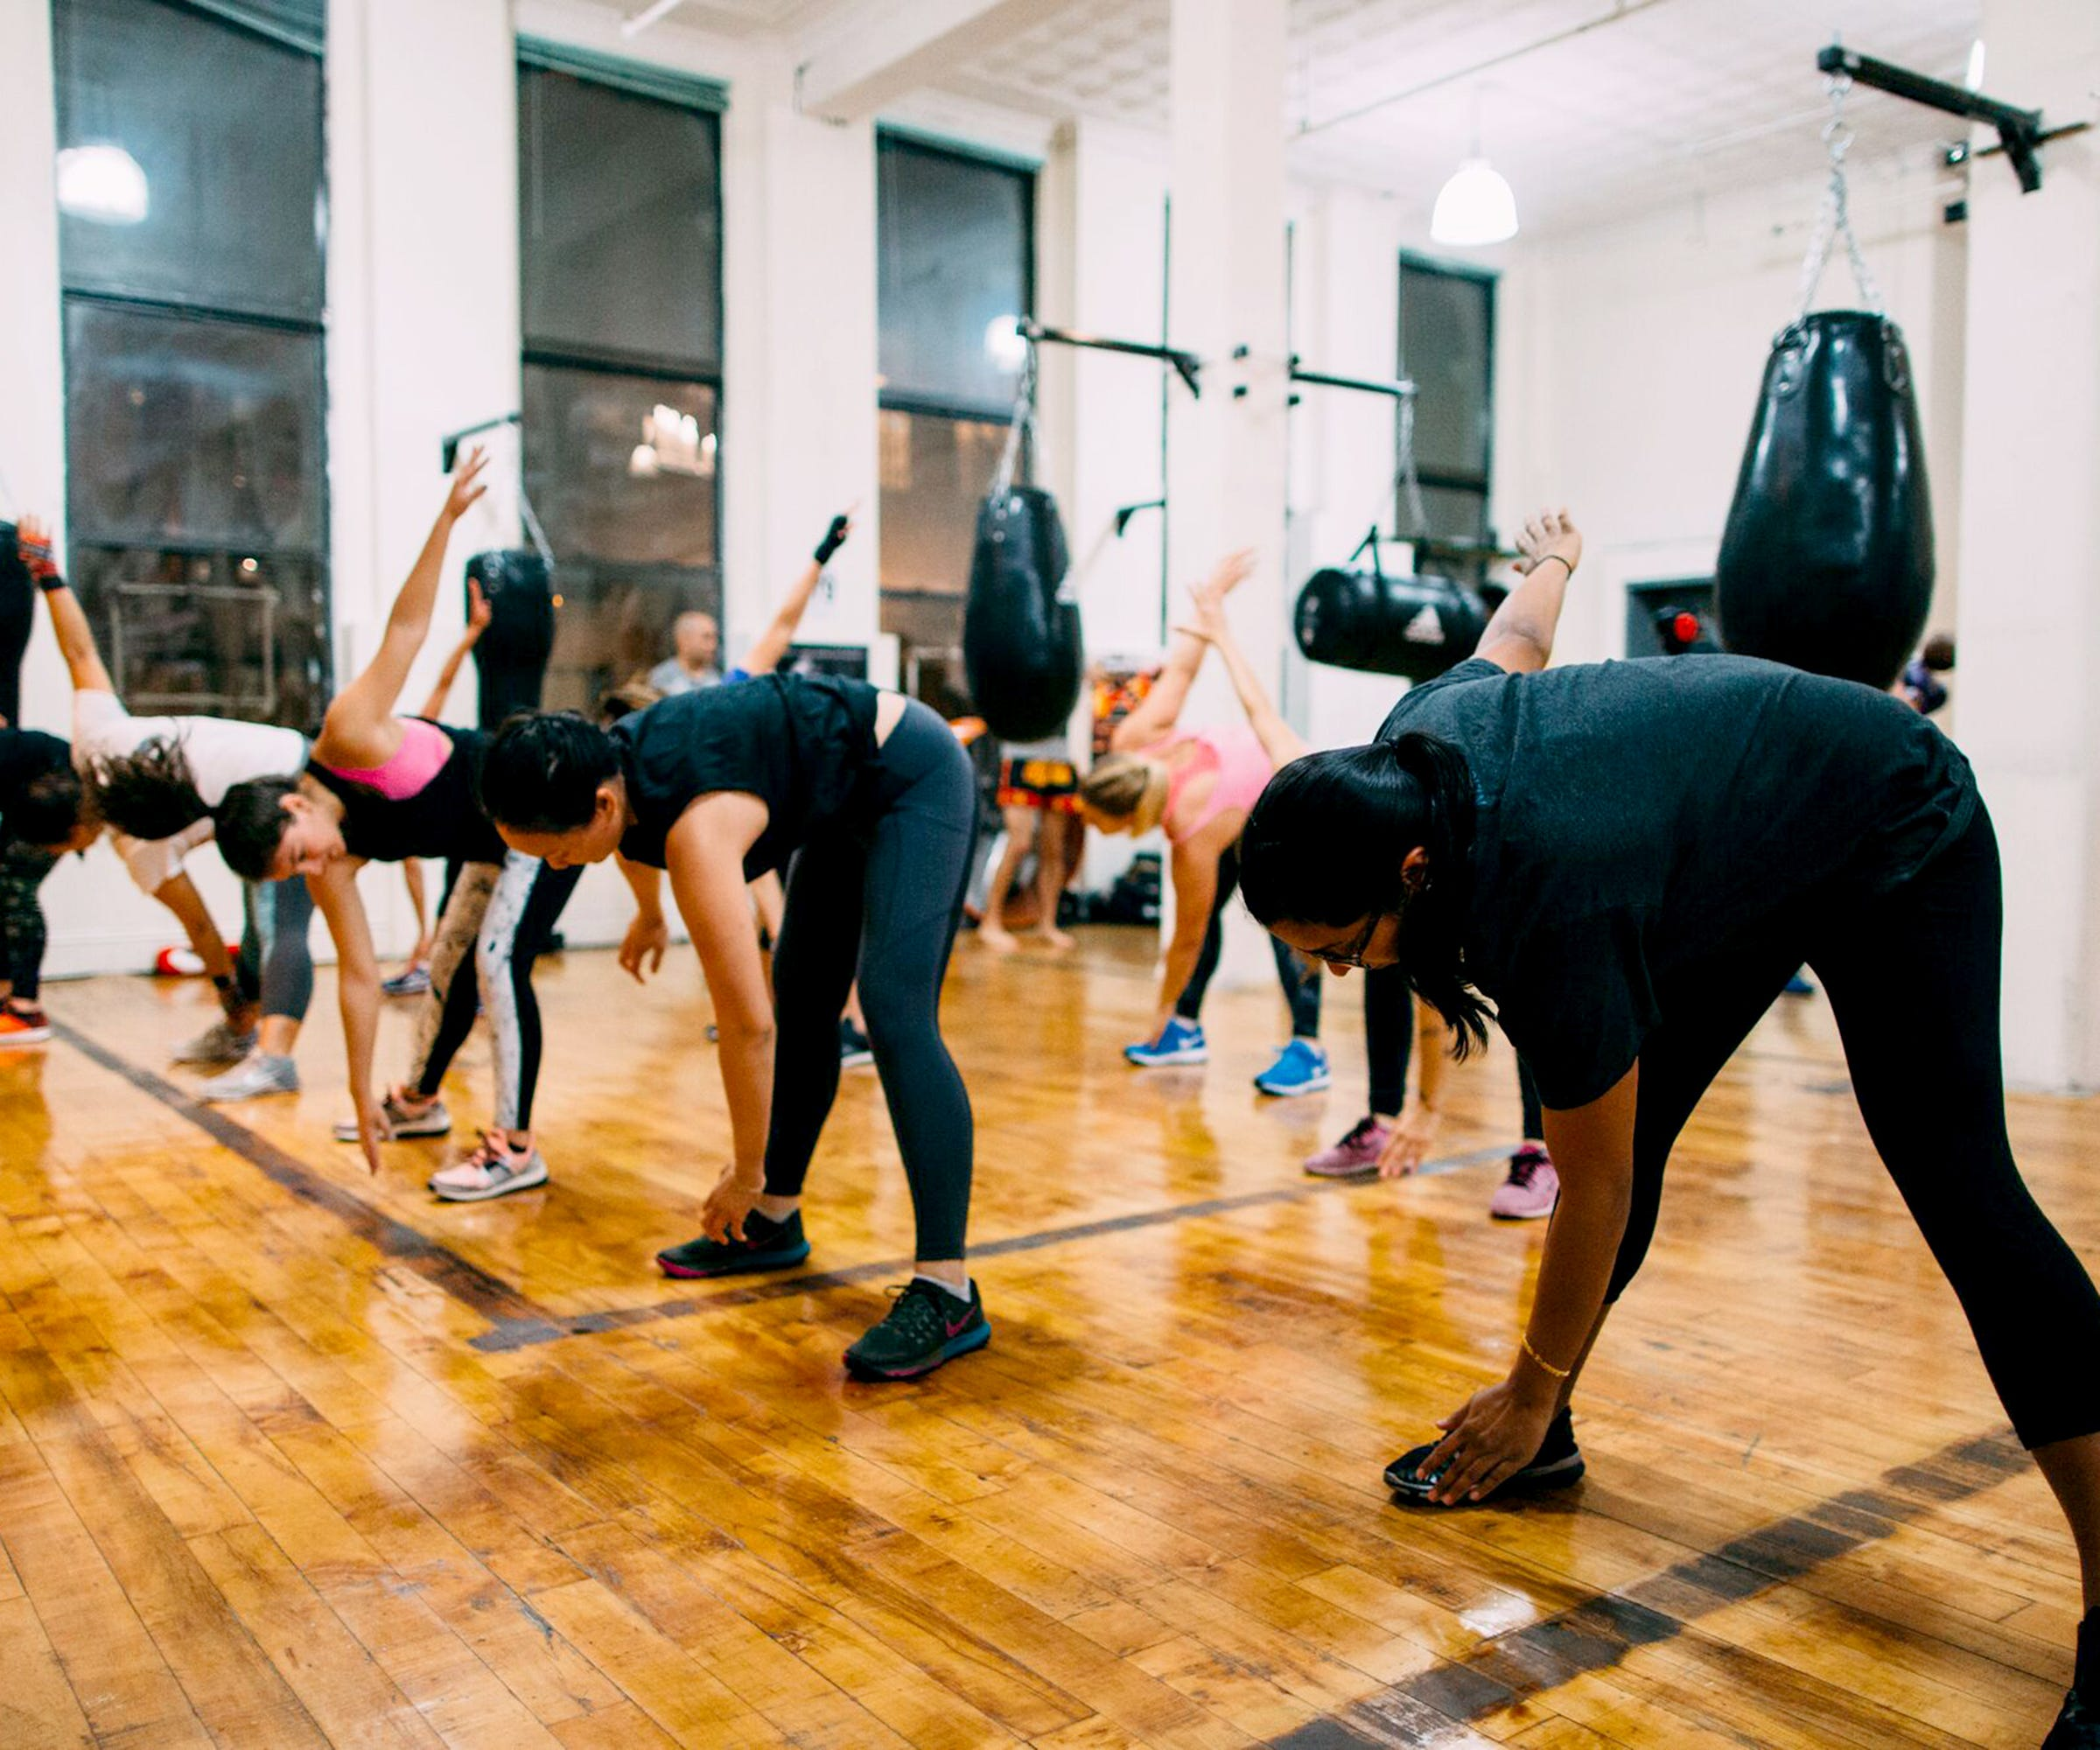 Best Boxing Classes In NYC, Kickboxing Studio Reviews